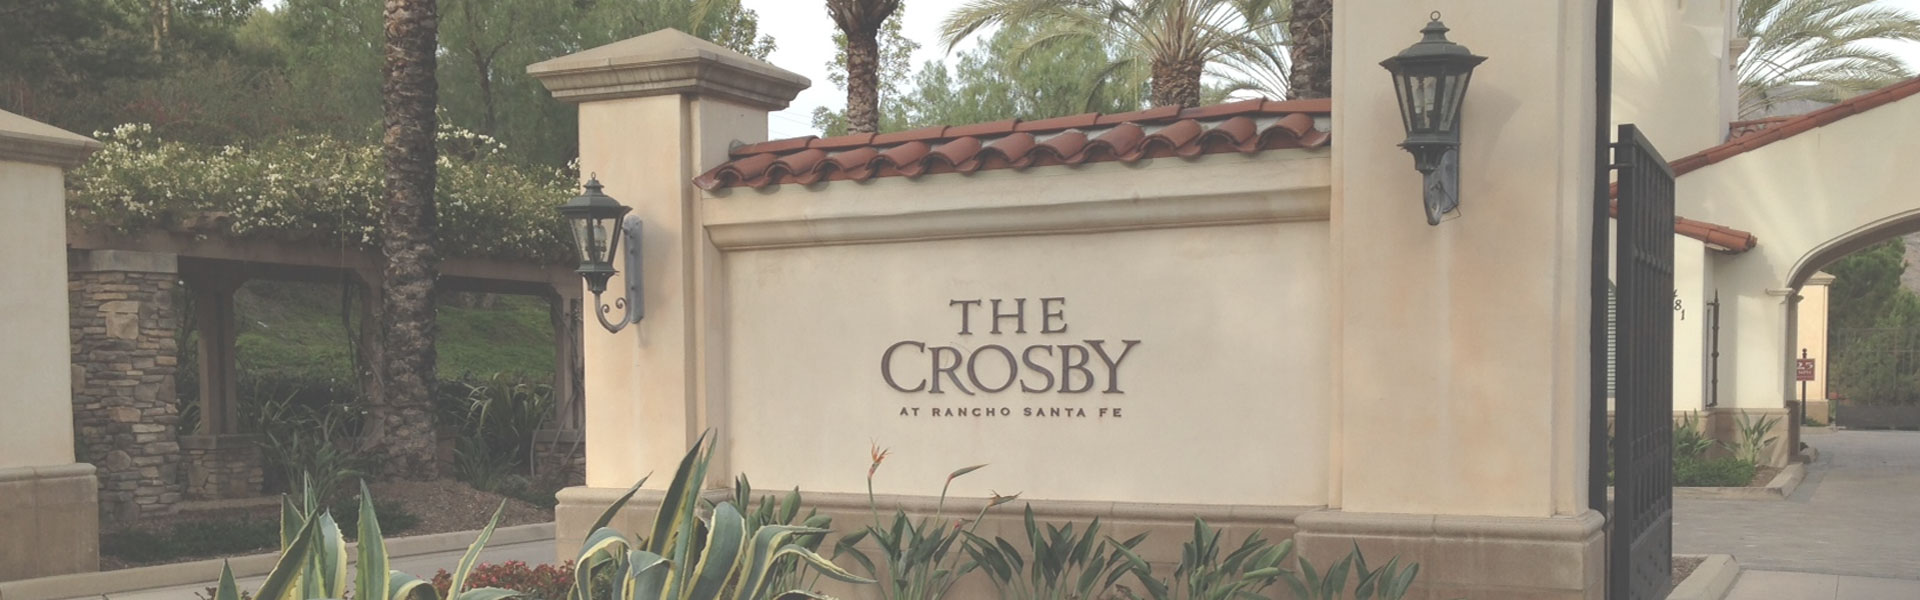 Welcome to The Crosby Estate at Rancho Santa Fe Master Association